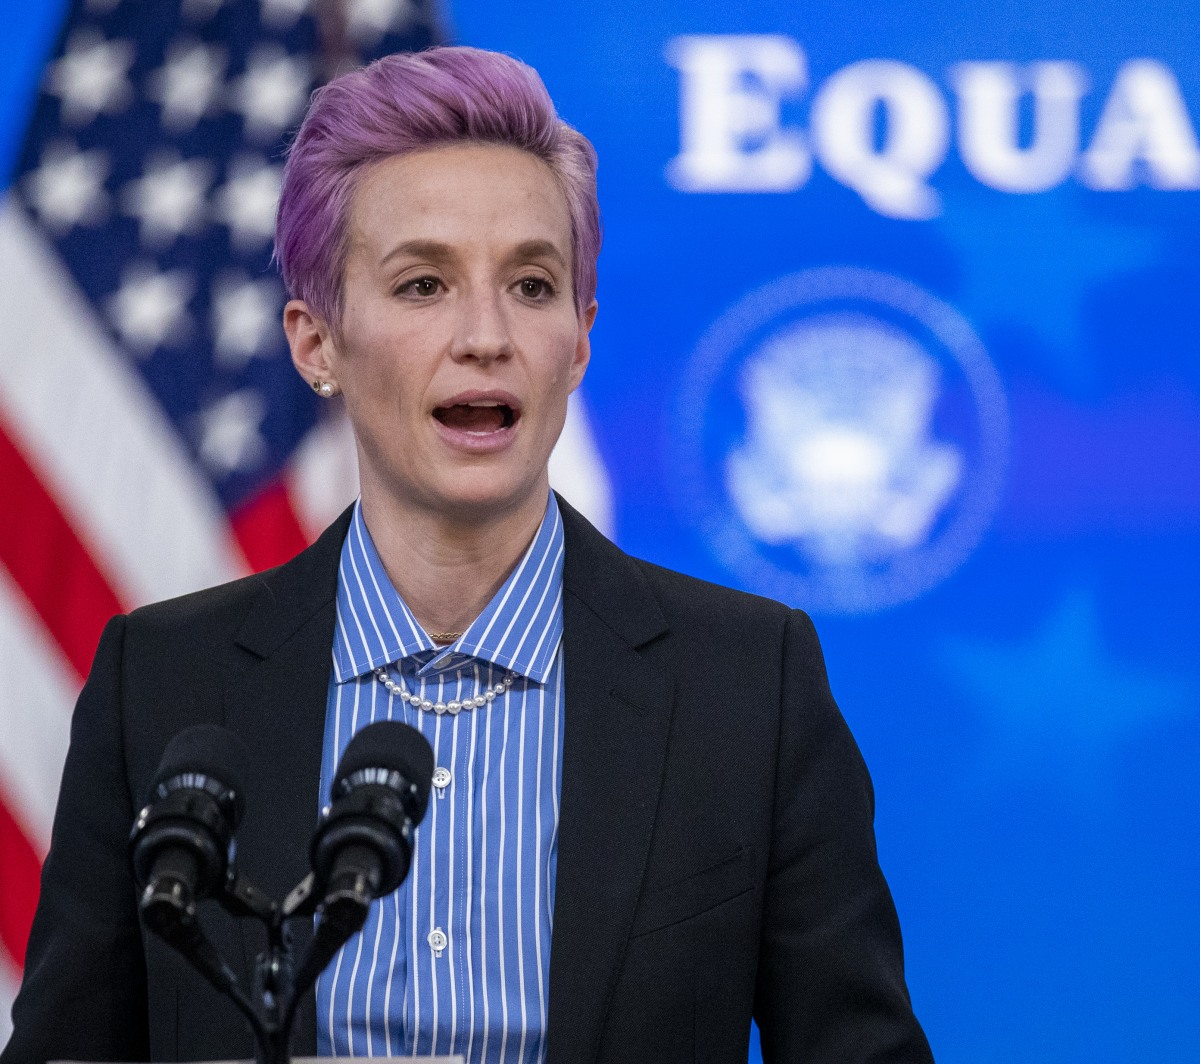 US President Joe Biden participates in an event to mark Equal Pay Day